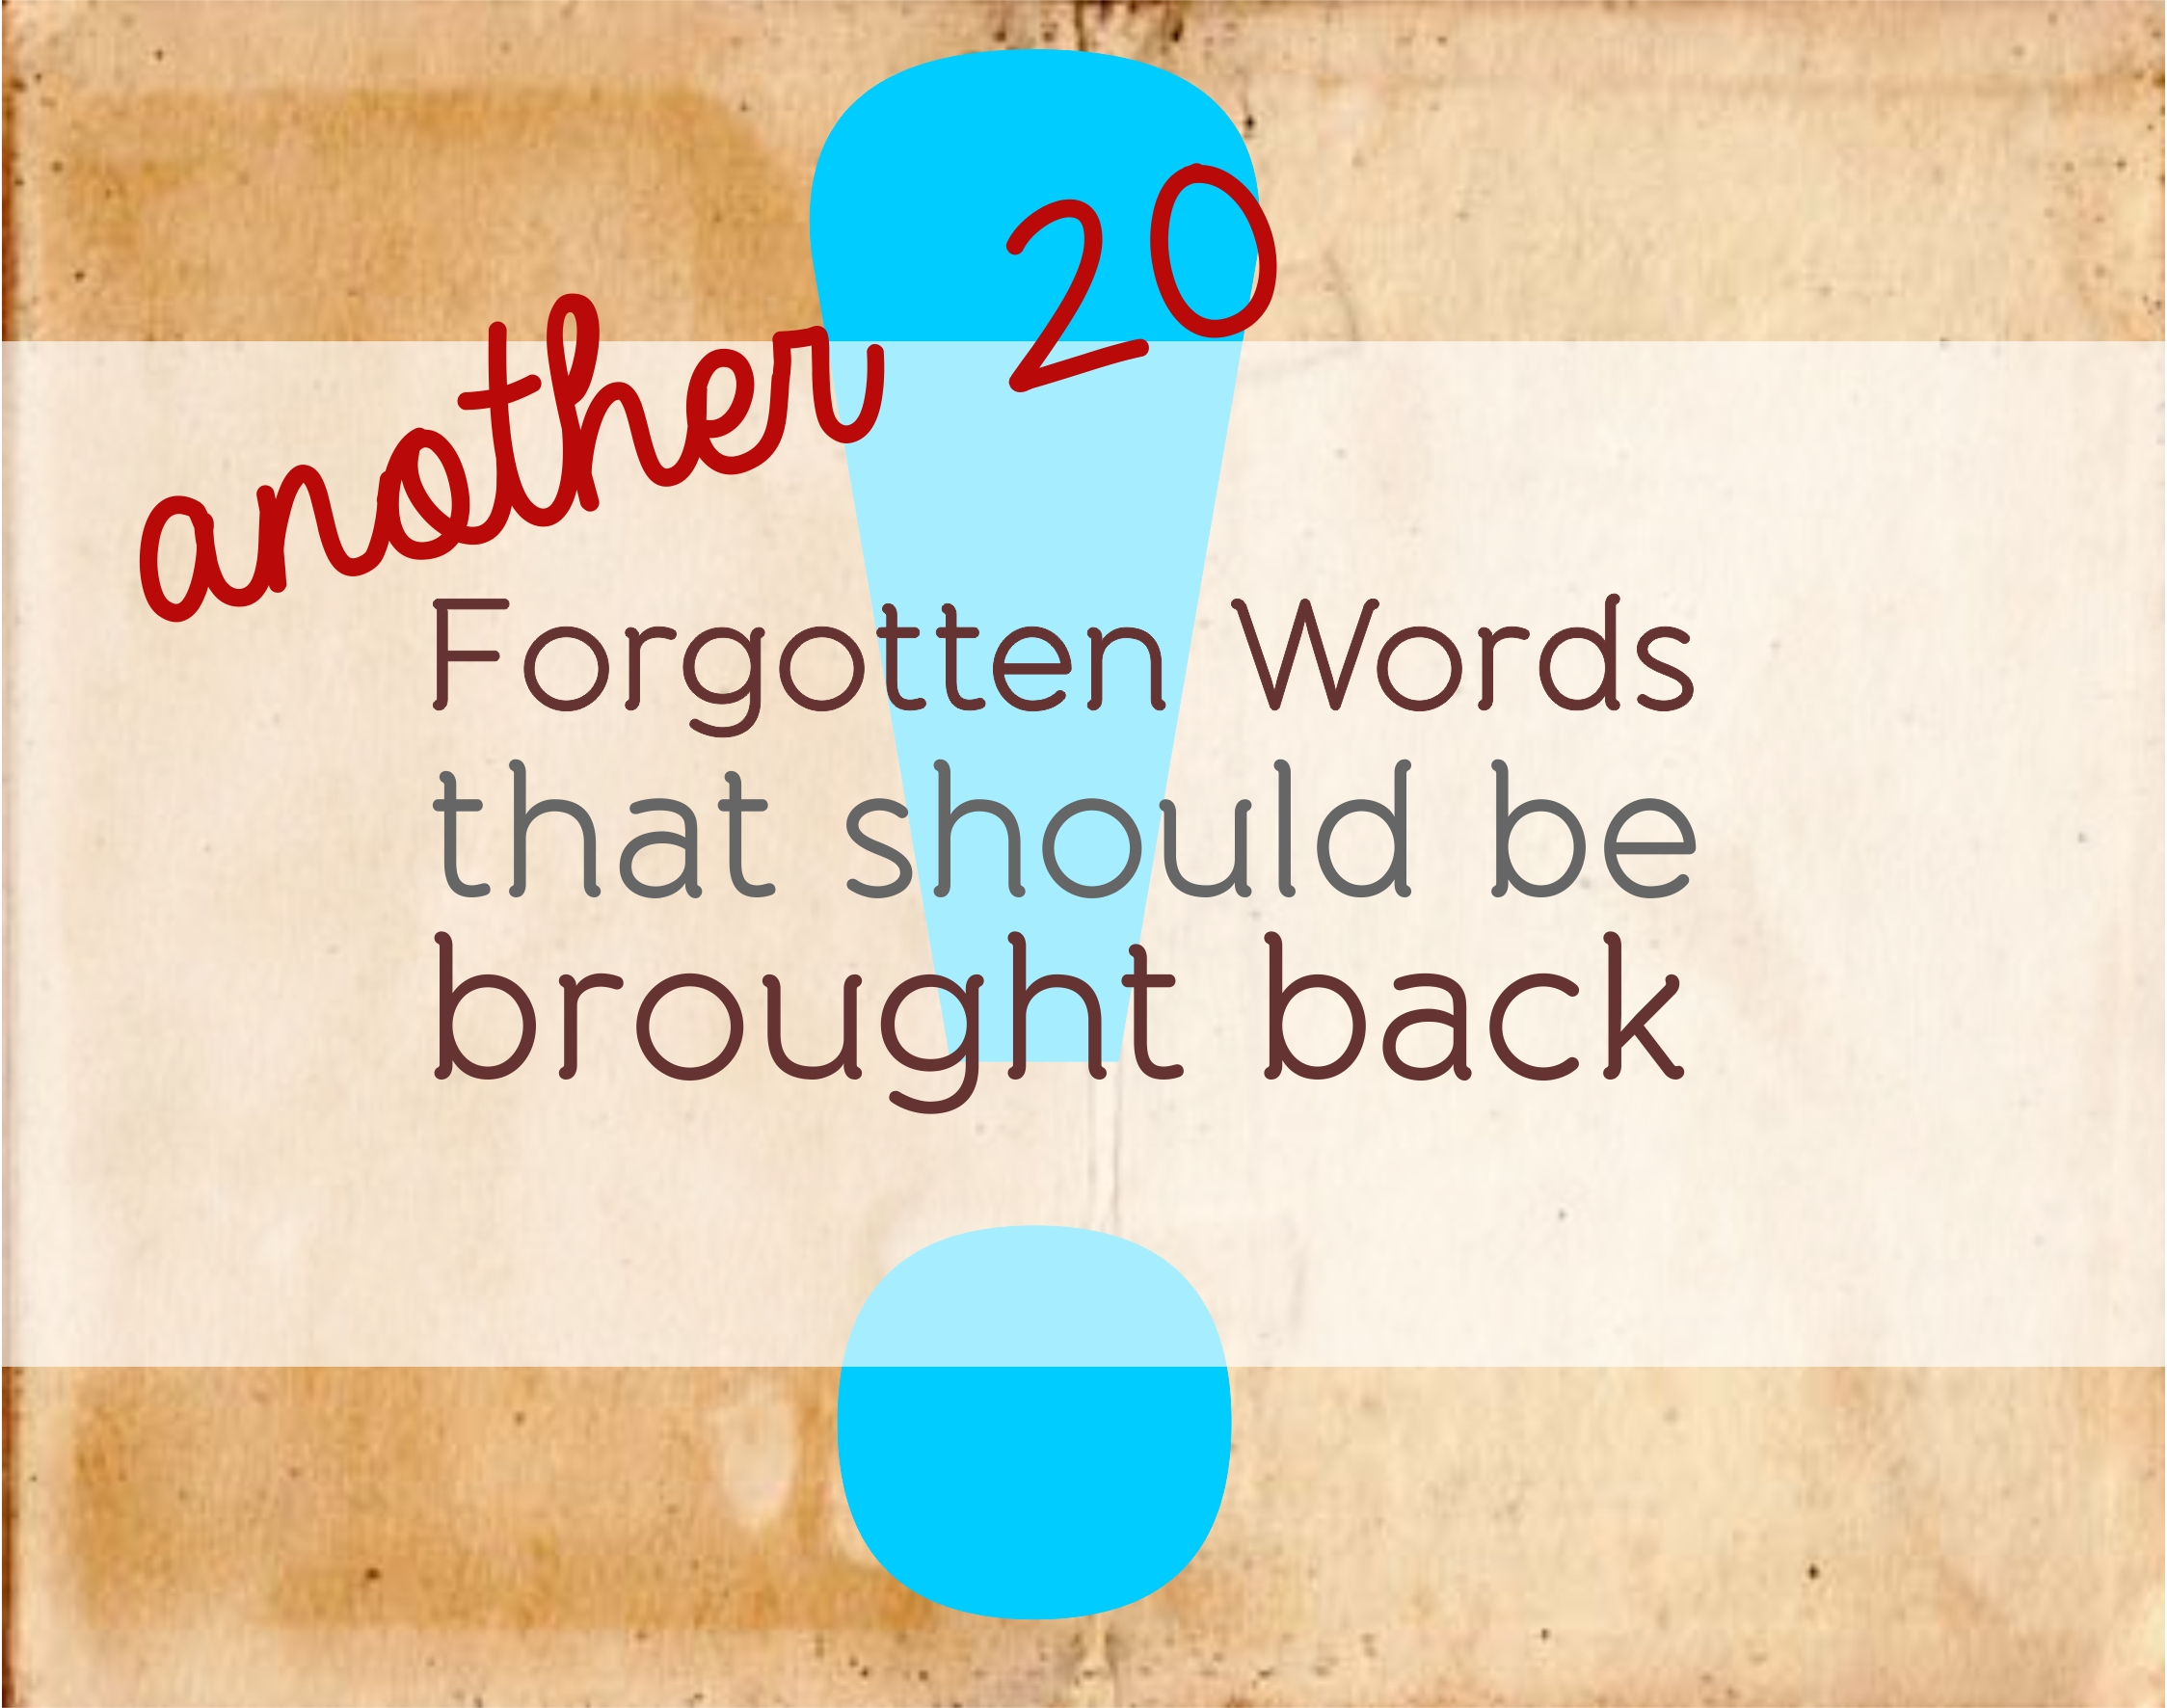 13 Wonderful Old English Words Another 20 Forgotten Words That Should Be  Brought Back Justenglish.me  Self Descriptive Words For Resume